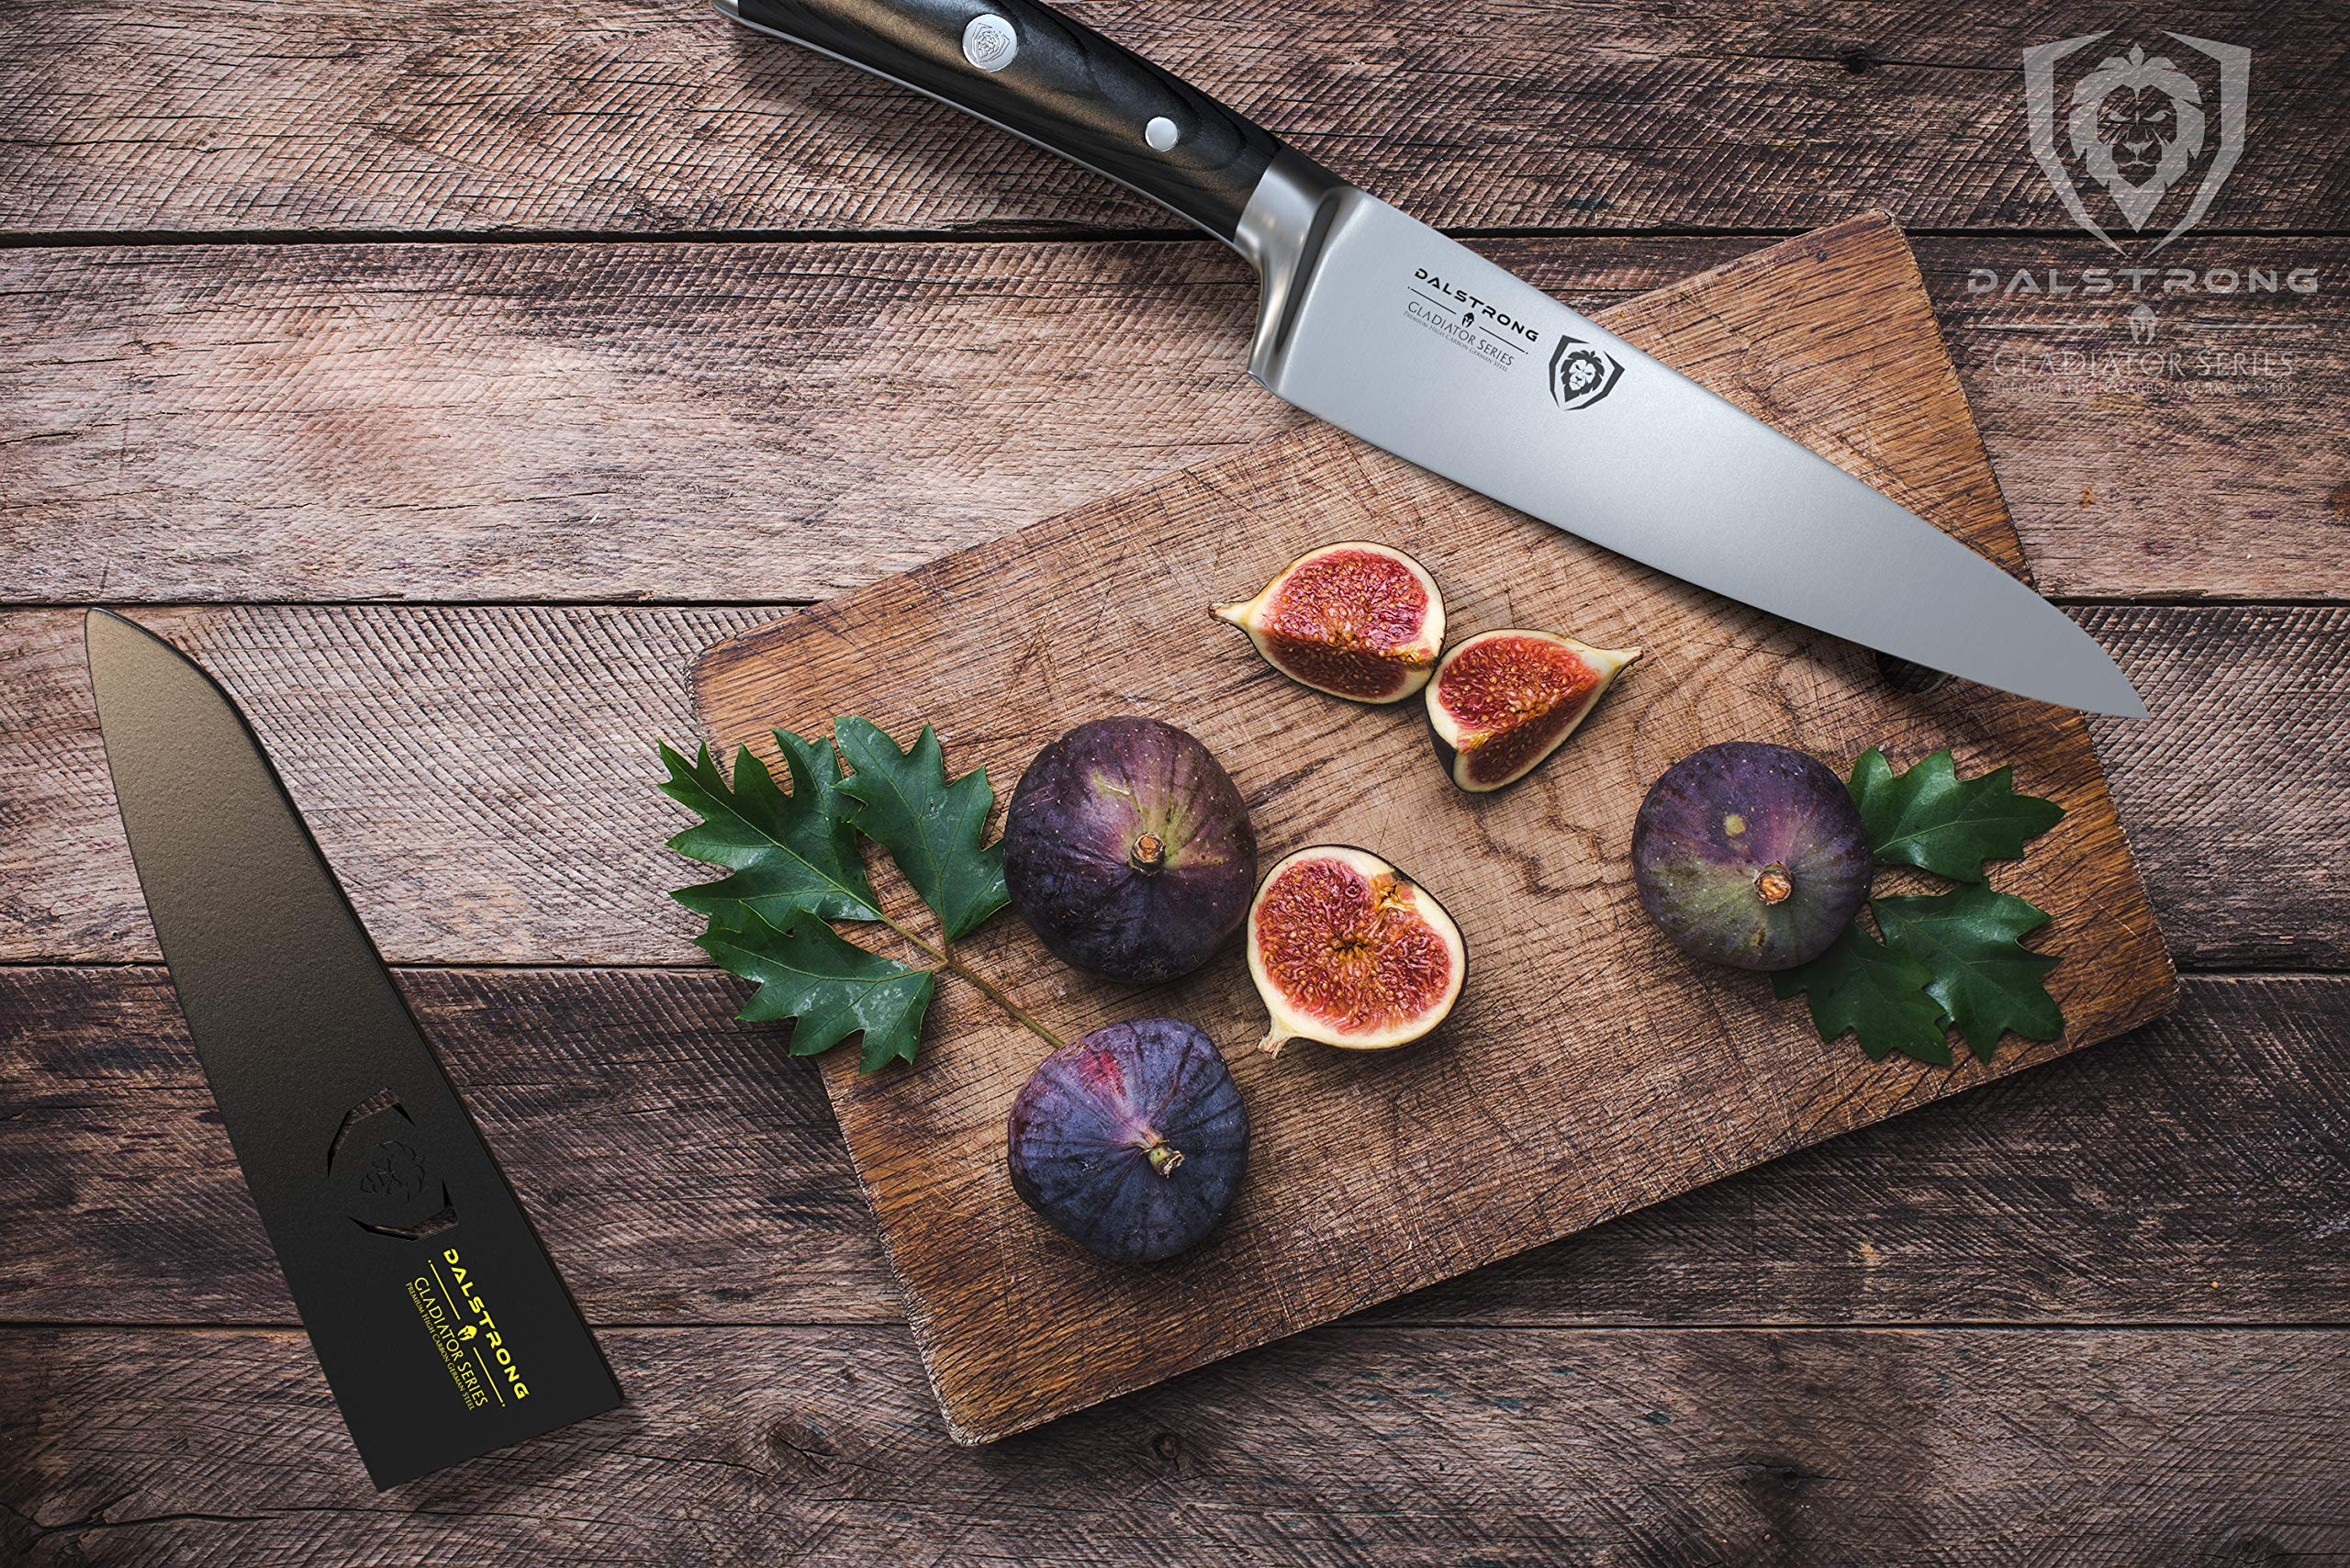 Dalstrong Chef's Knife - Gladiator Series - German HC Steel - 7'' w/Sheath by Dalstrong (Image #4)